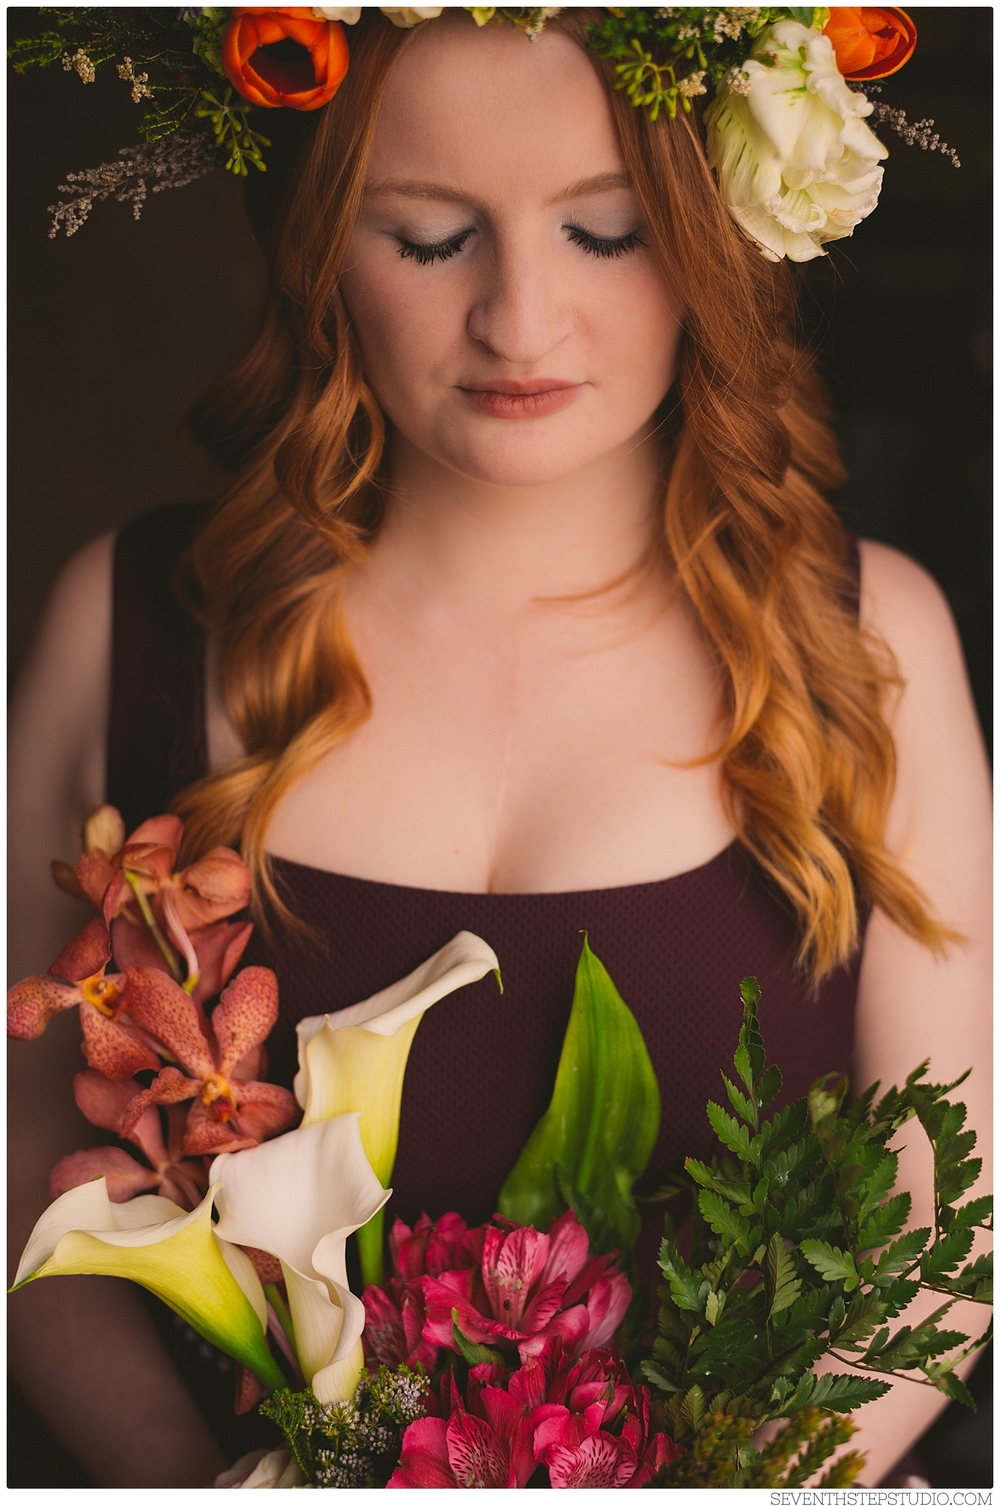 Seventh Step Studio + Calyx & Corolla - Floral Styled Shoot Collaboration - Fuss Hair Studio, Toronto ON